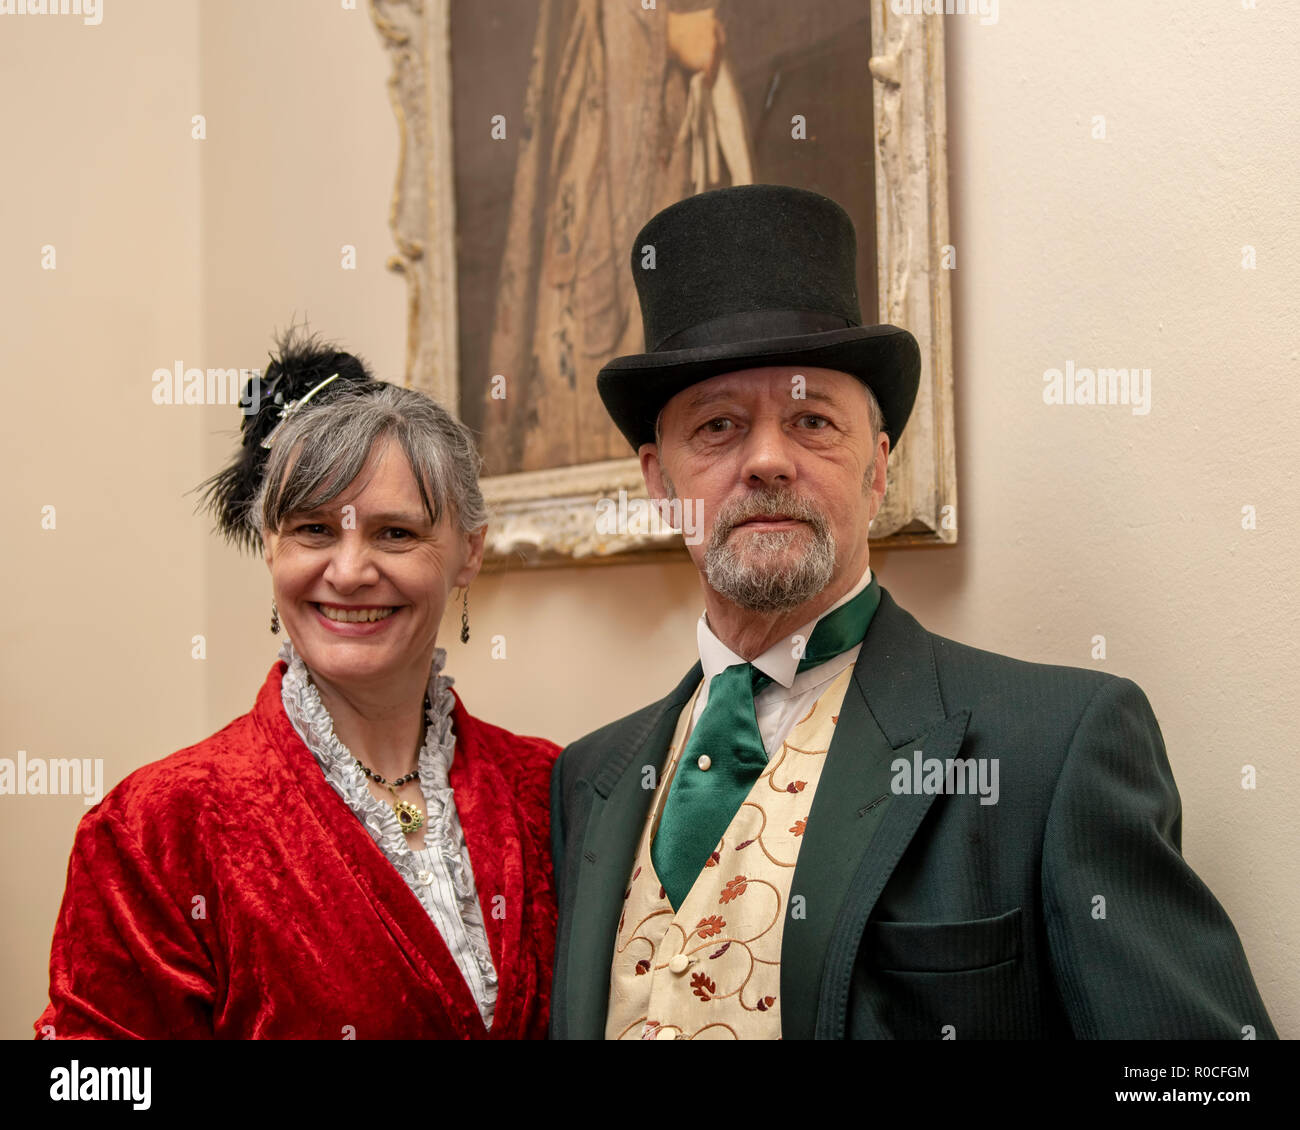 UK, Market Bosworth, Victorian Christmas Fair - December 2015:  A couple dress in victorian costume - Stock Image